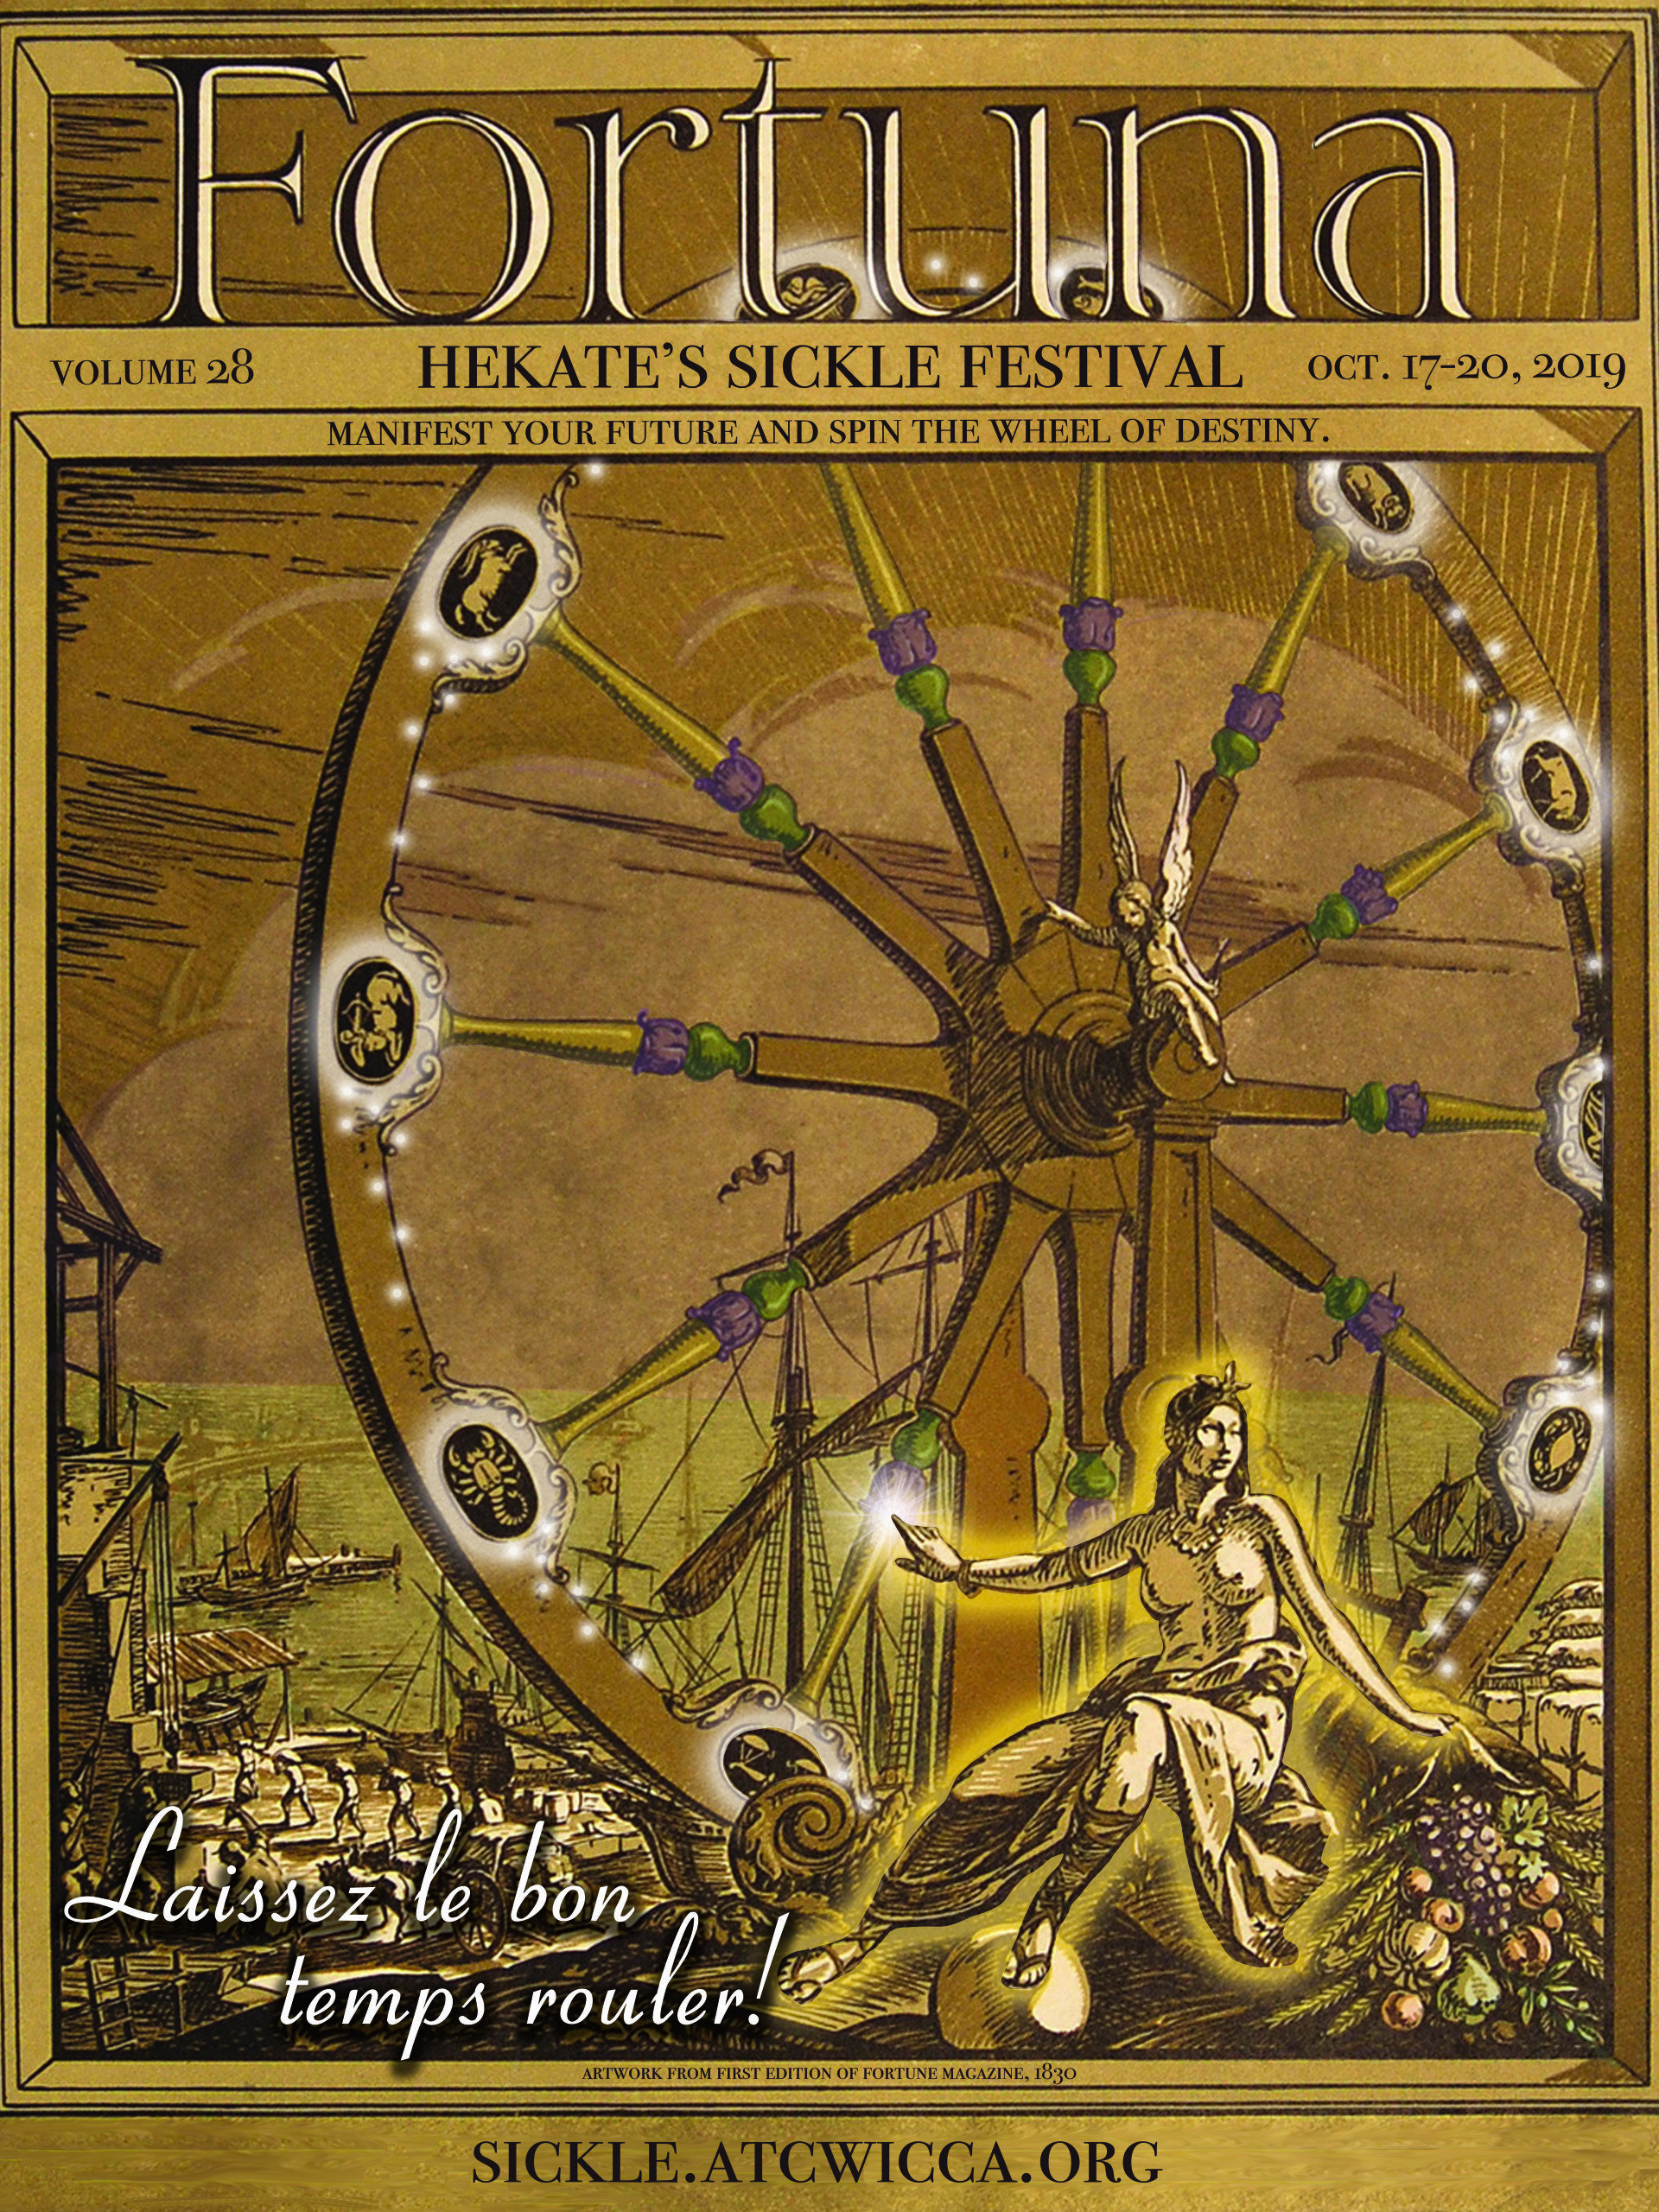 Hekate's Sickle Festival